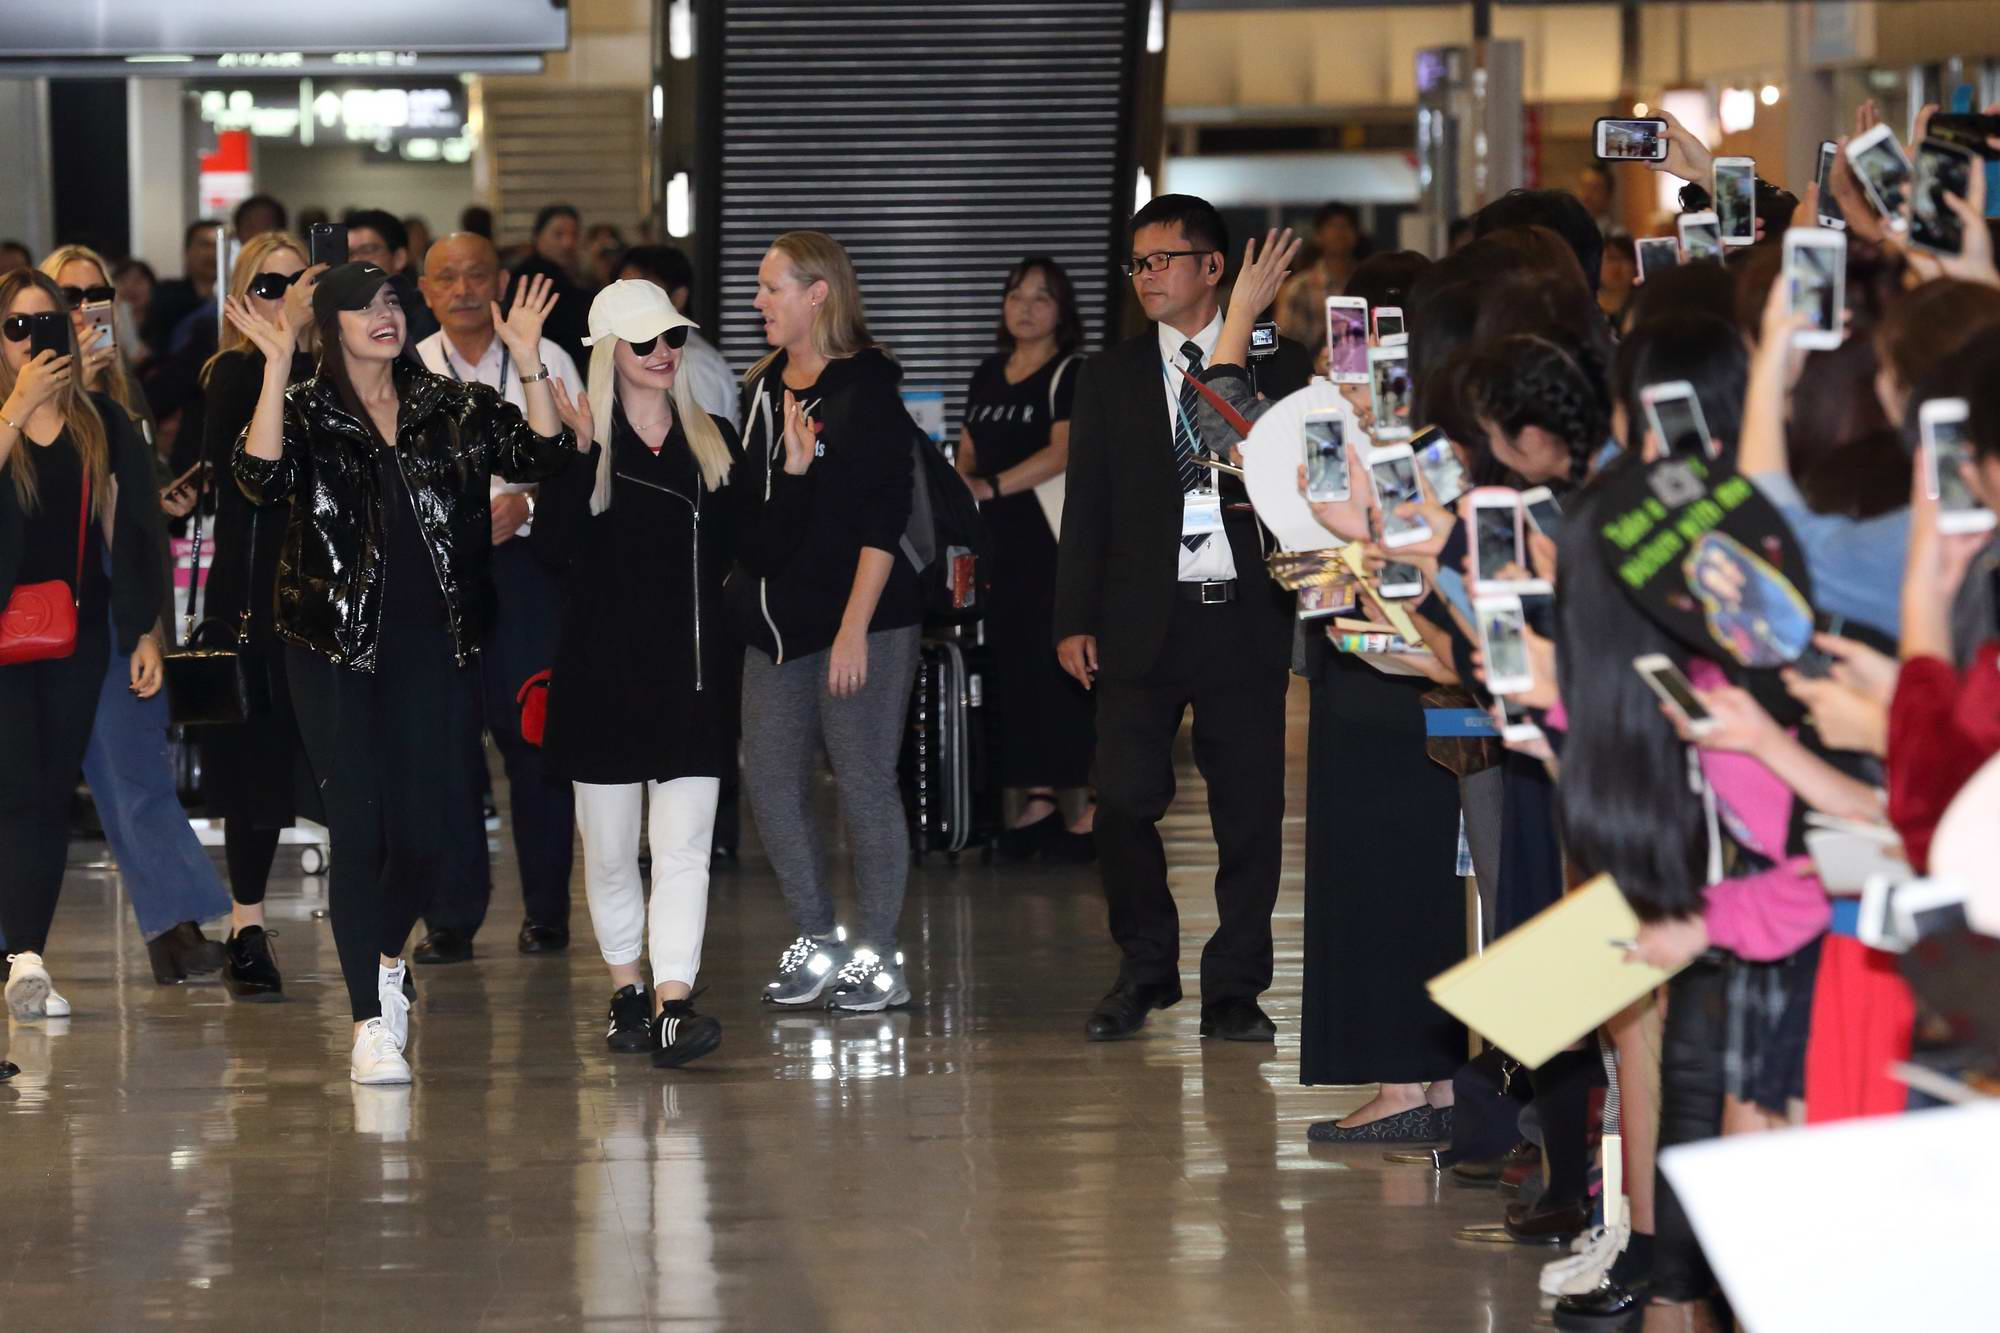 Dove Cameron and Sofia Carson seen arriving at Narita Airport to promote the Descendants 2 in Tokyo, Japan